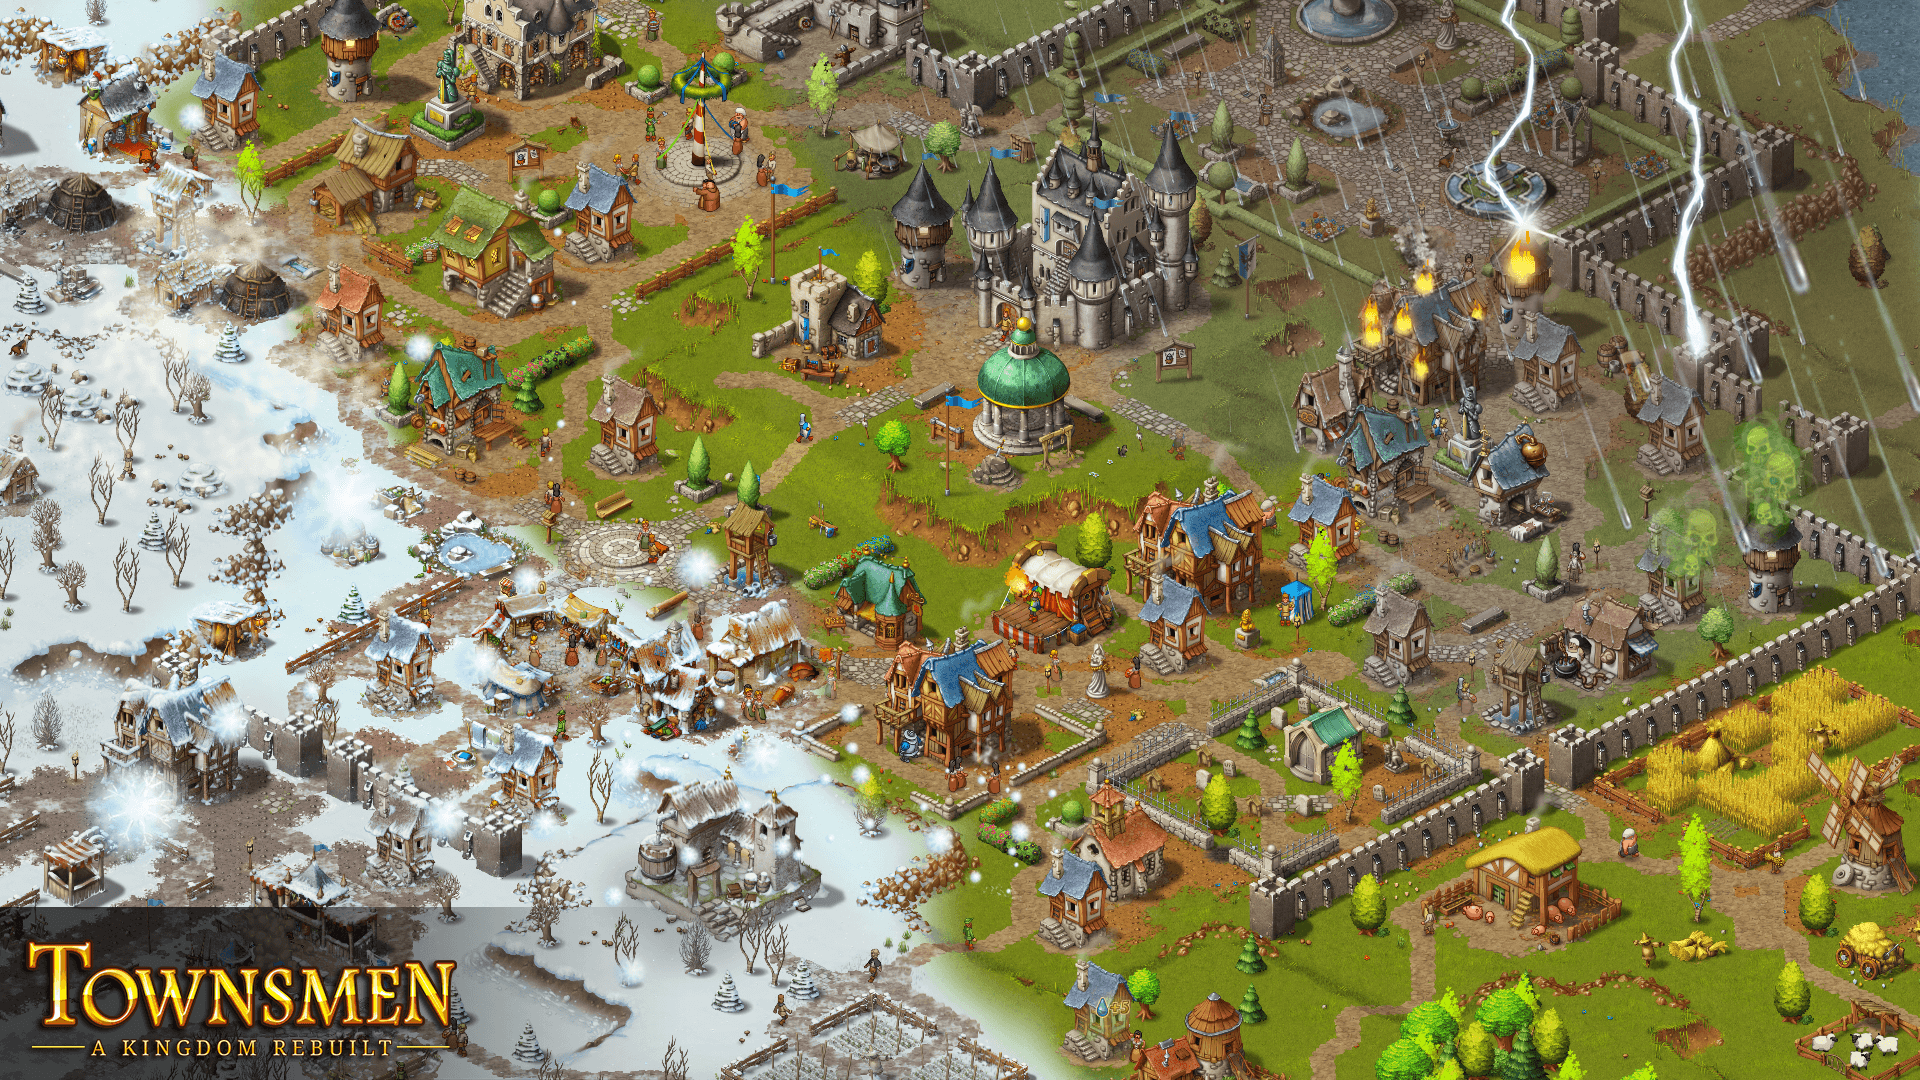 Townsmen A Kingdom Rebuilt gameplay with logo